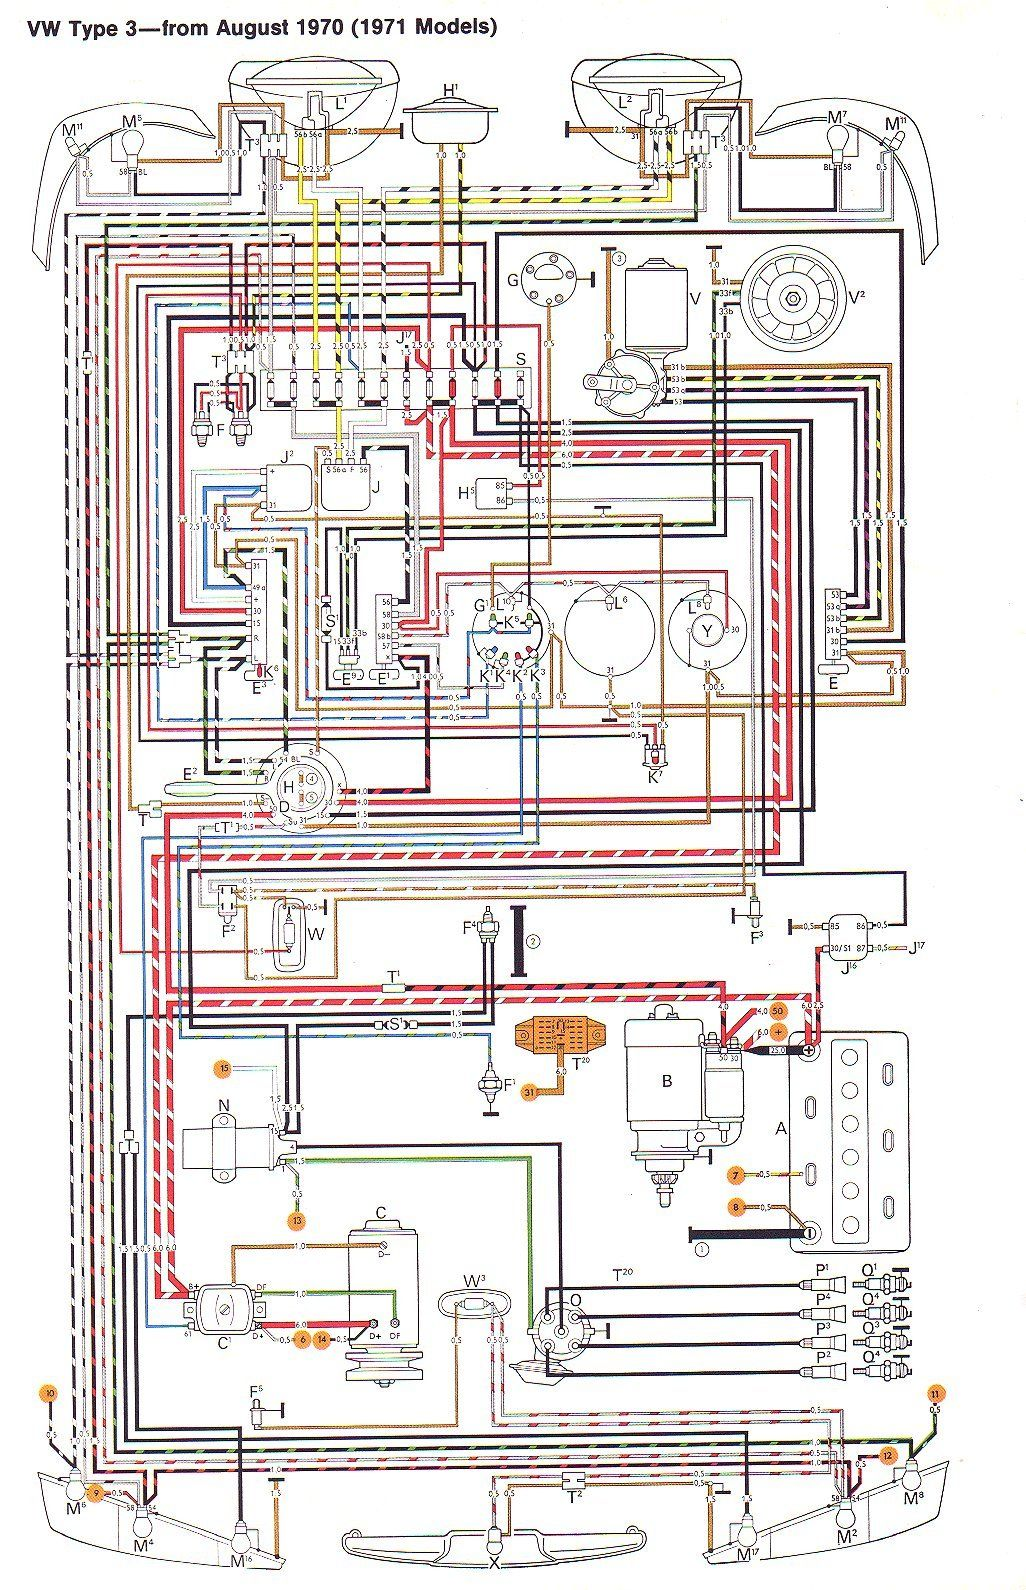 e0db58370f79a63d02d45f00cf63f44a 71 vw t3 wiring diagram car projects pinterest volkswagen 1971 vw bus wiring diagram at aneh.co